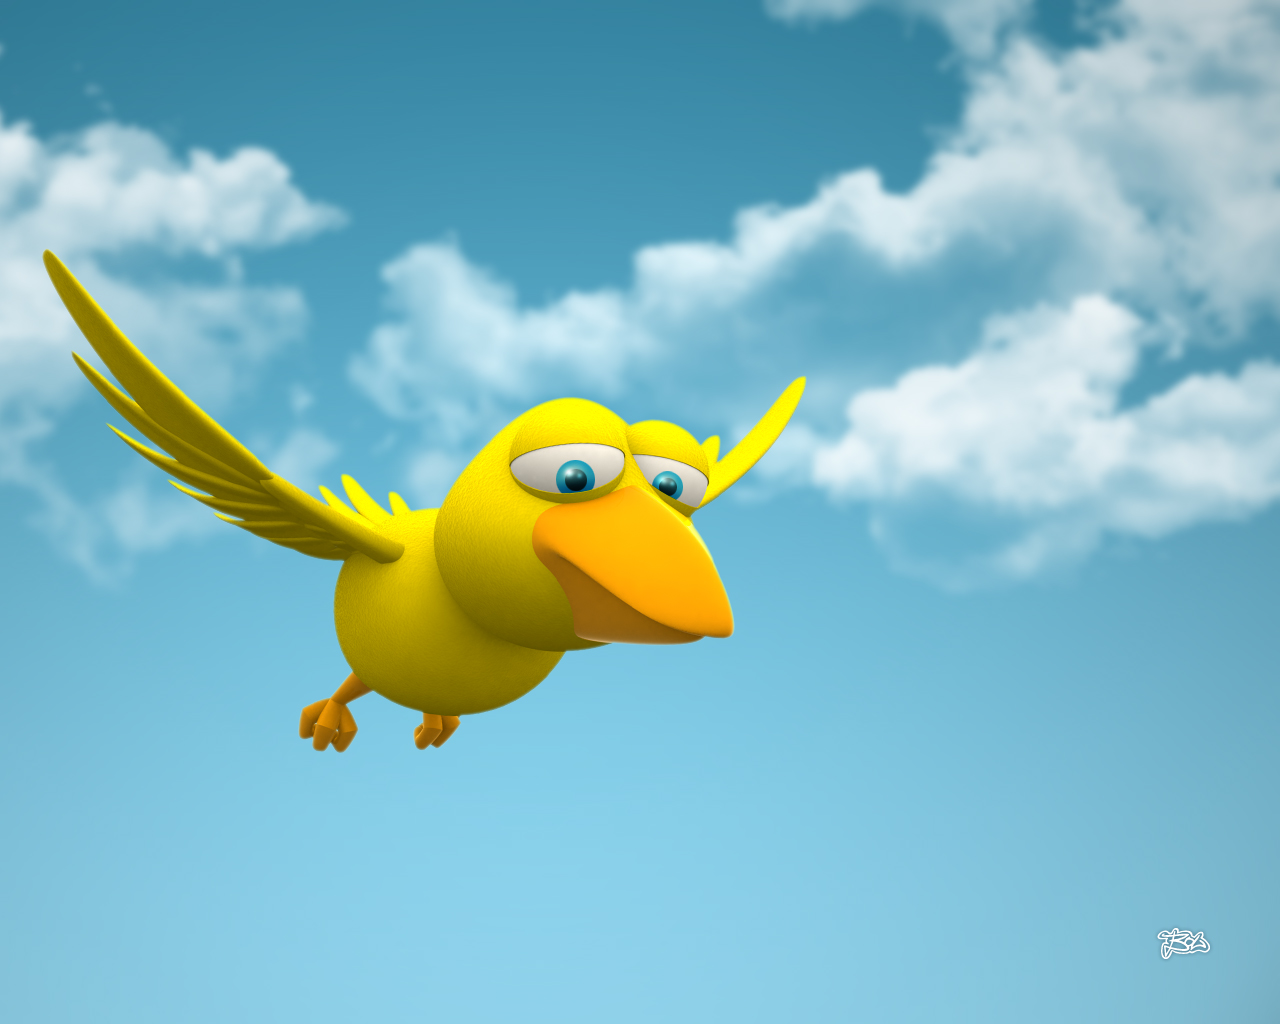 3D HD CARTOON WALLPAPERS | Free HD Wallpapers